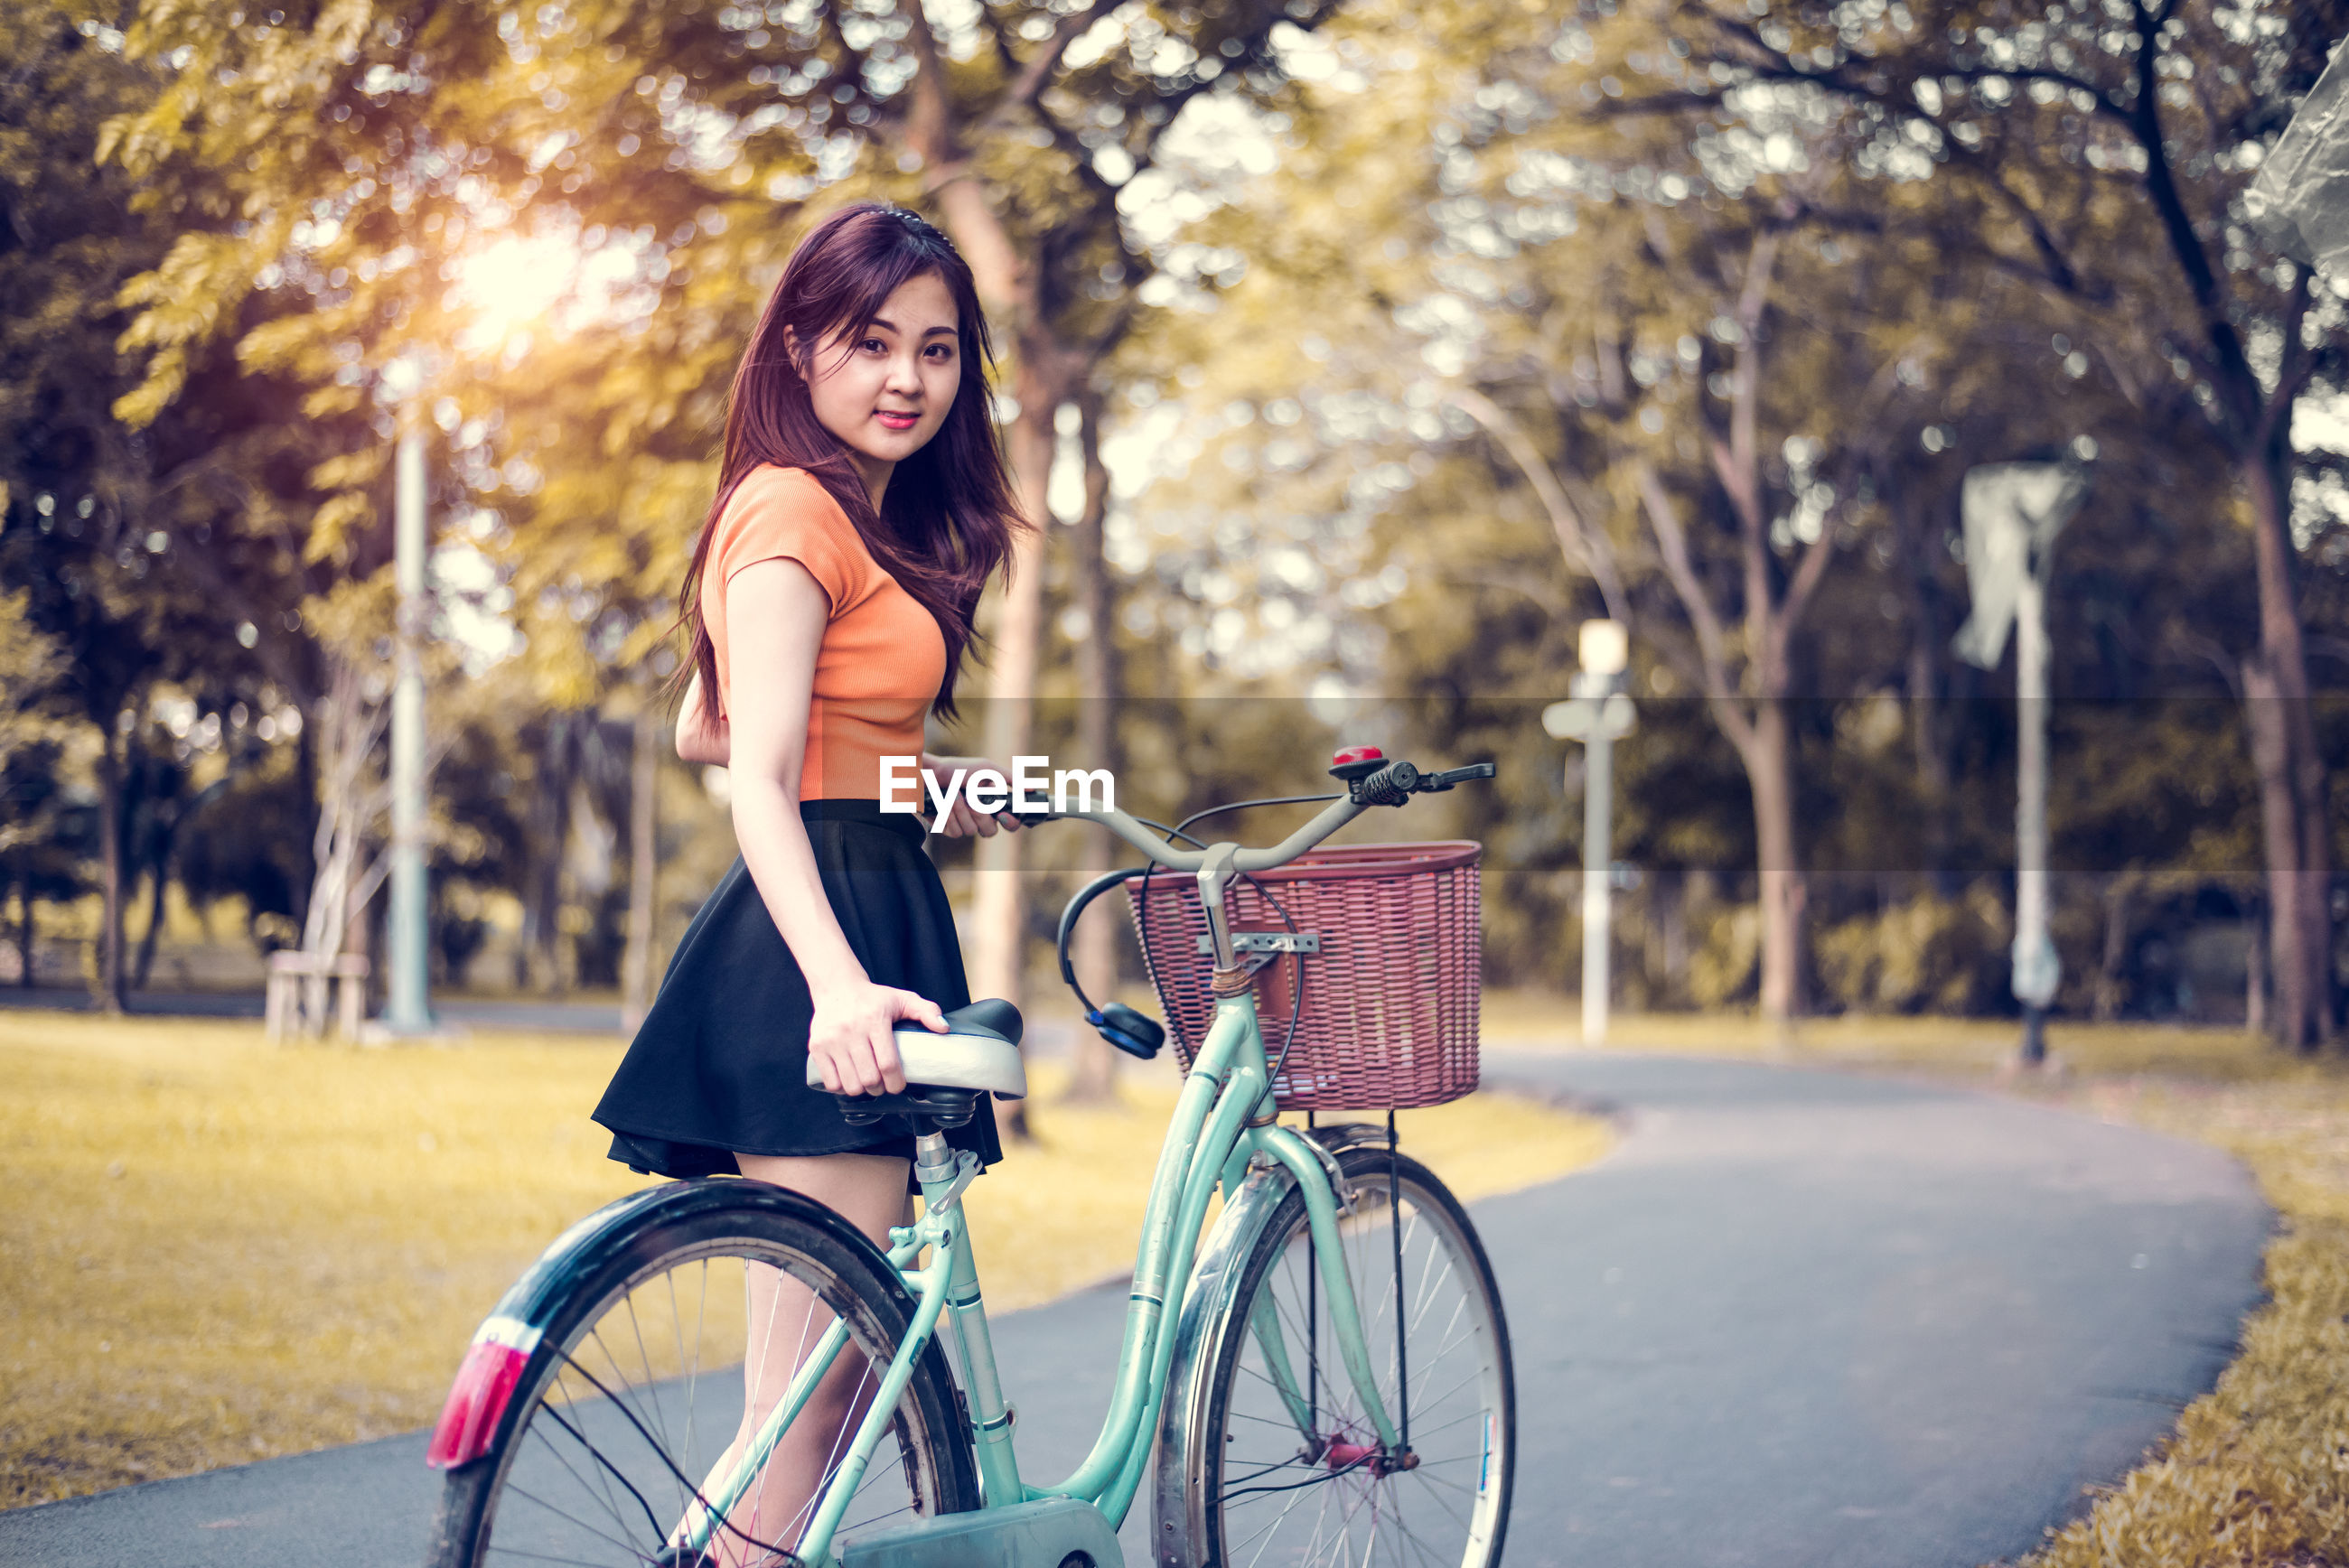 Portrait of woman riding bicycle in park